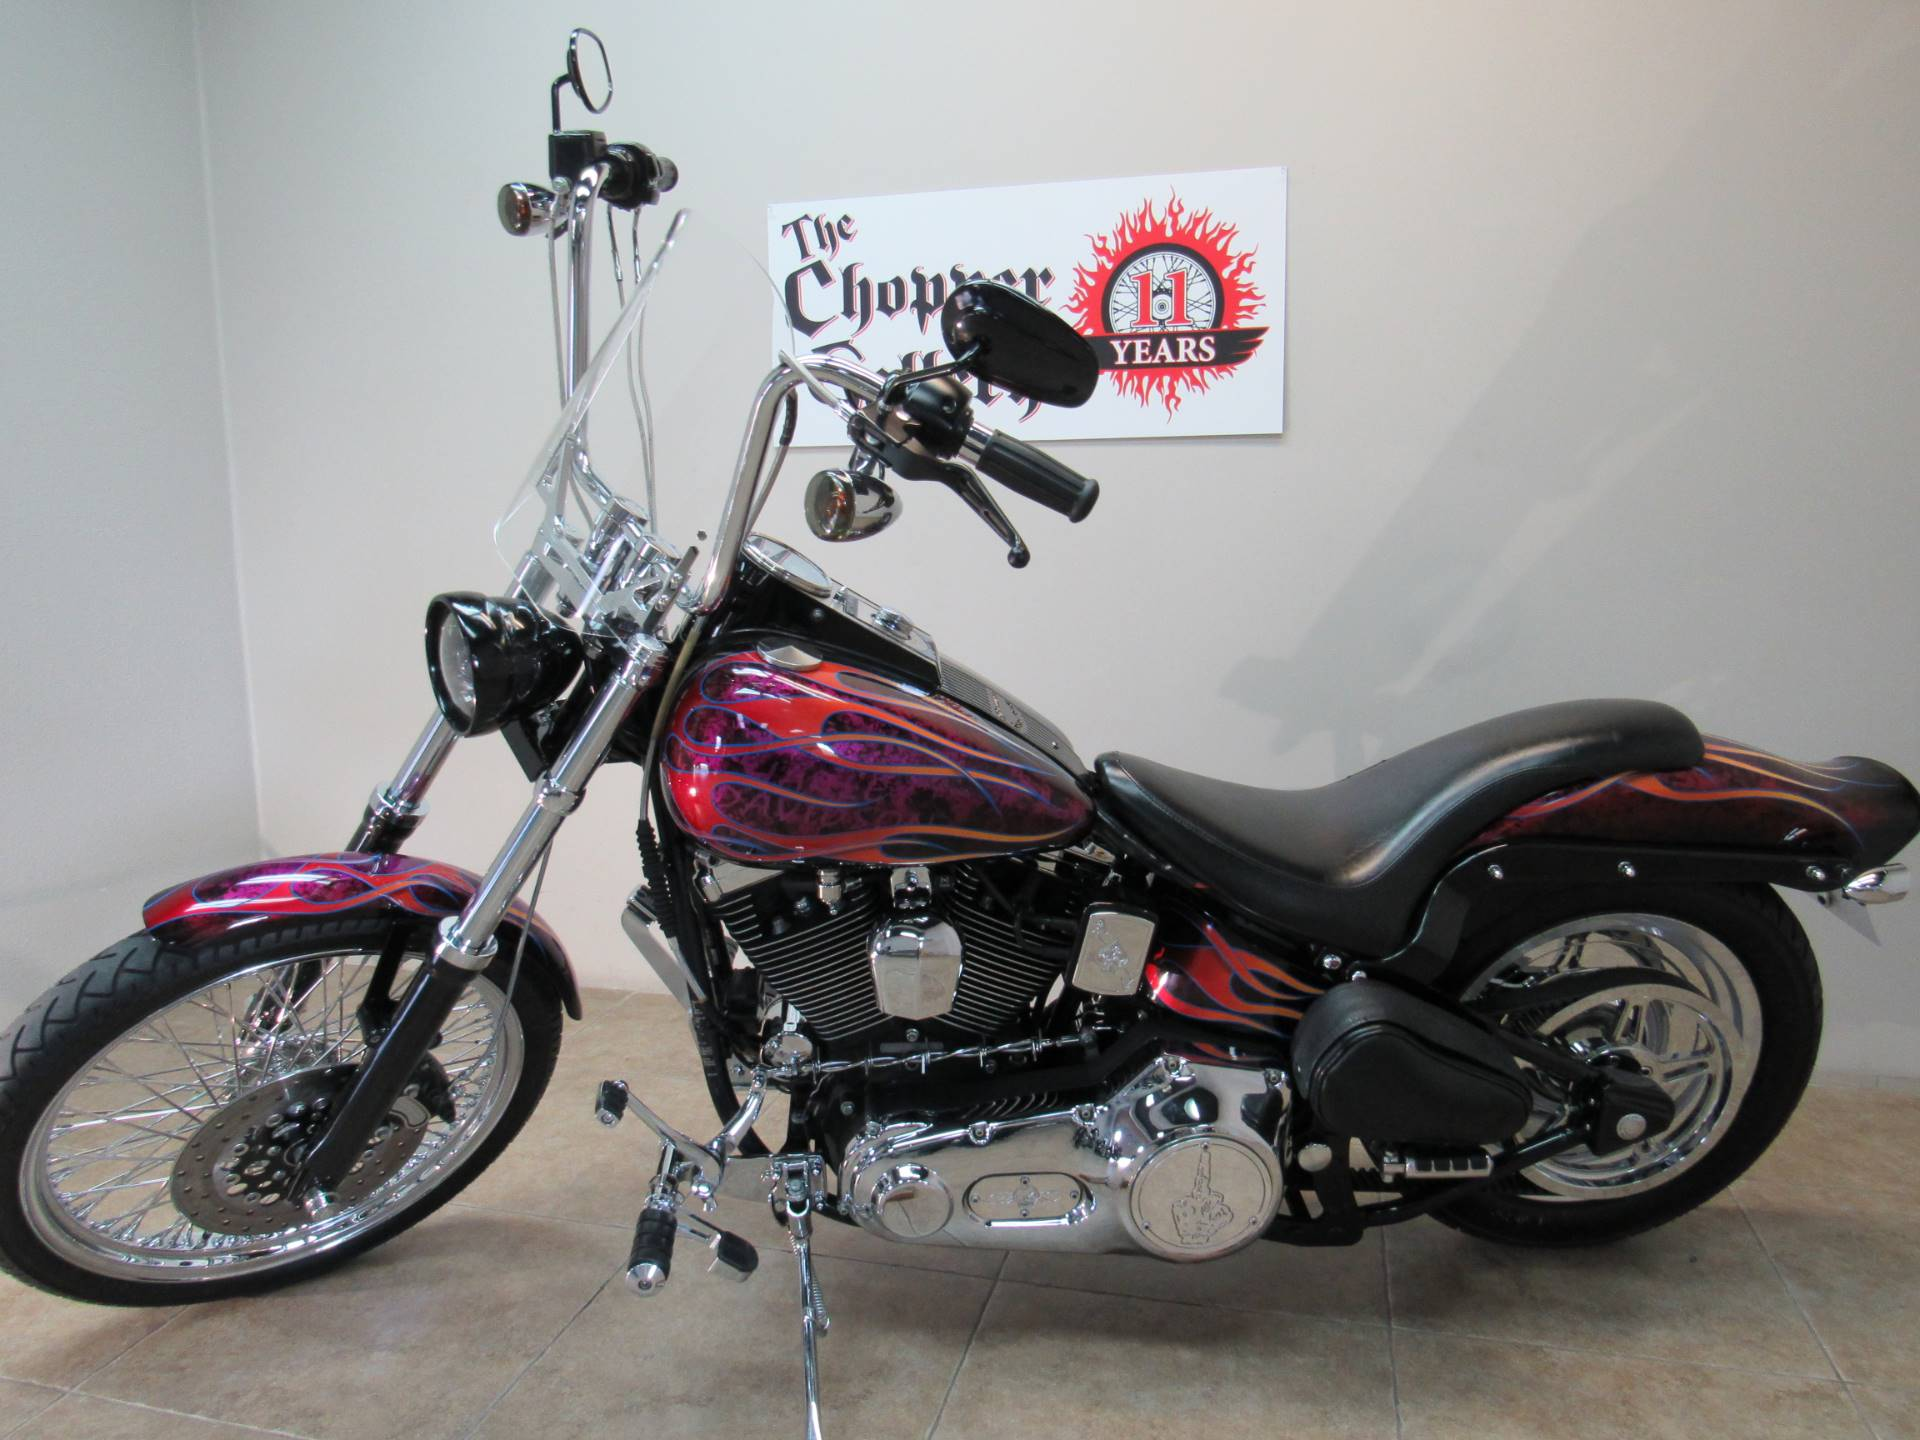 1996 Harley-Davidson softail custom in Temecula, California - Photo 1